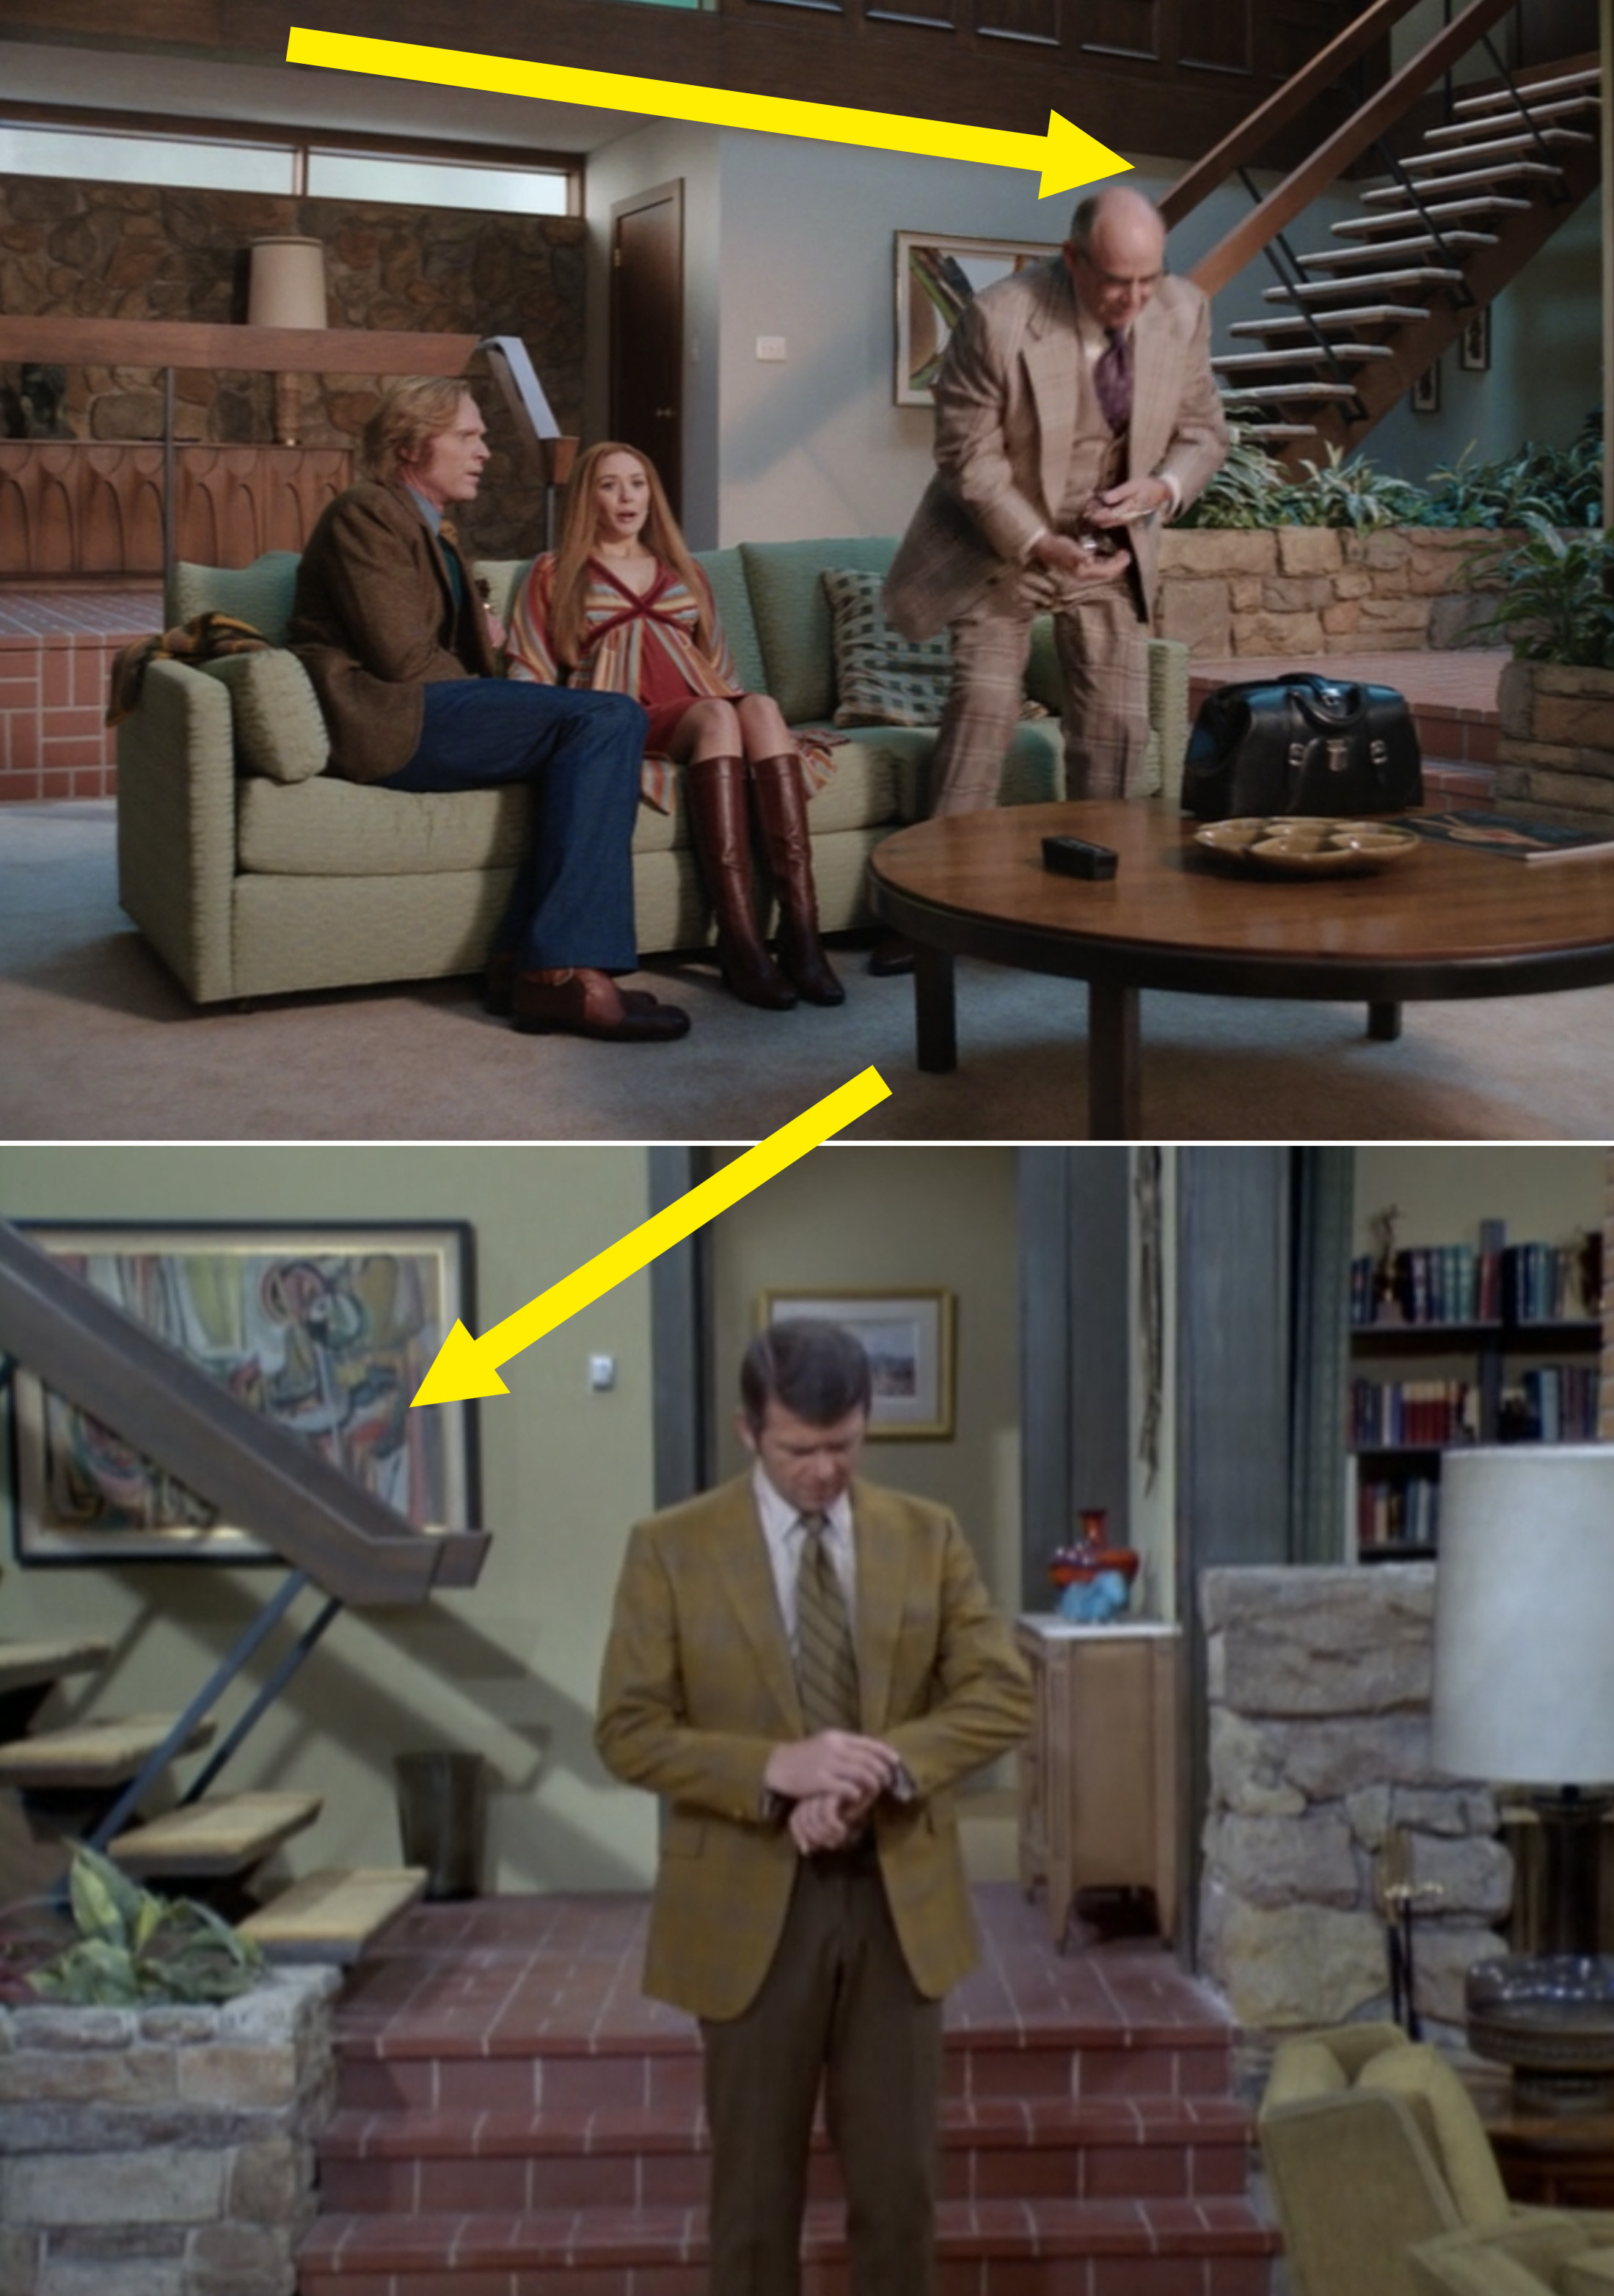 The stairs in WandaVision vs. the stairs and living room in The Brady Bunch